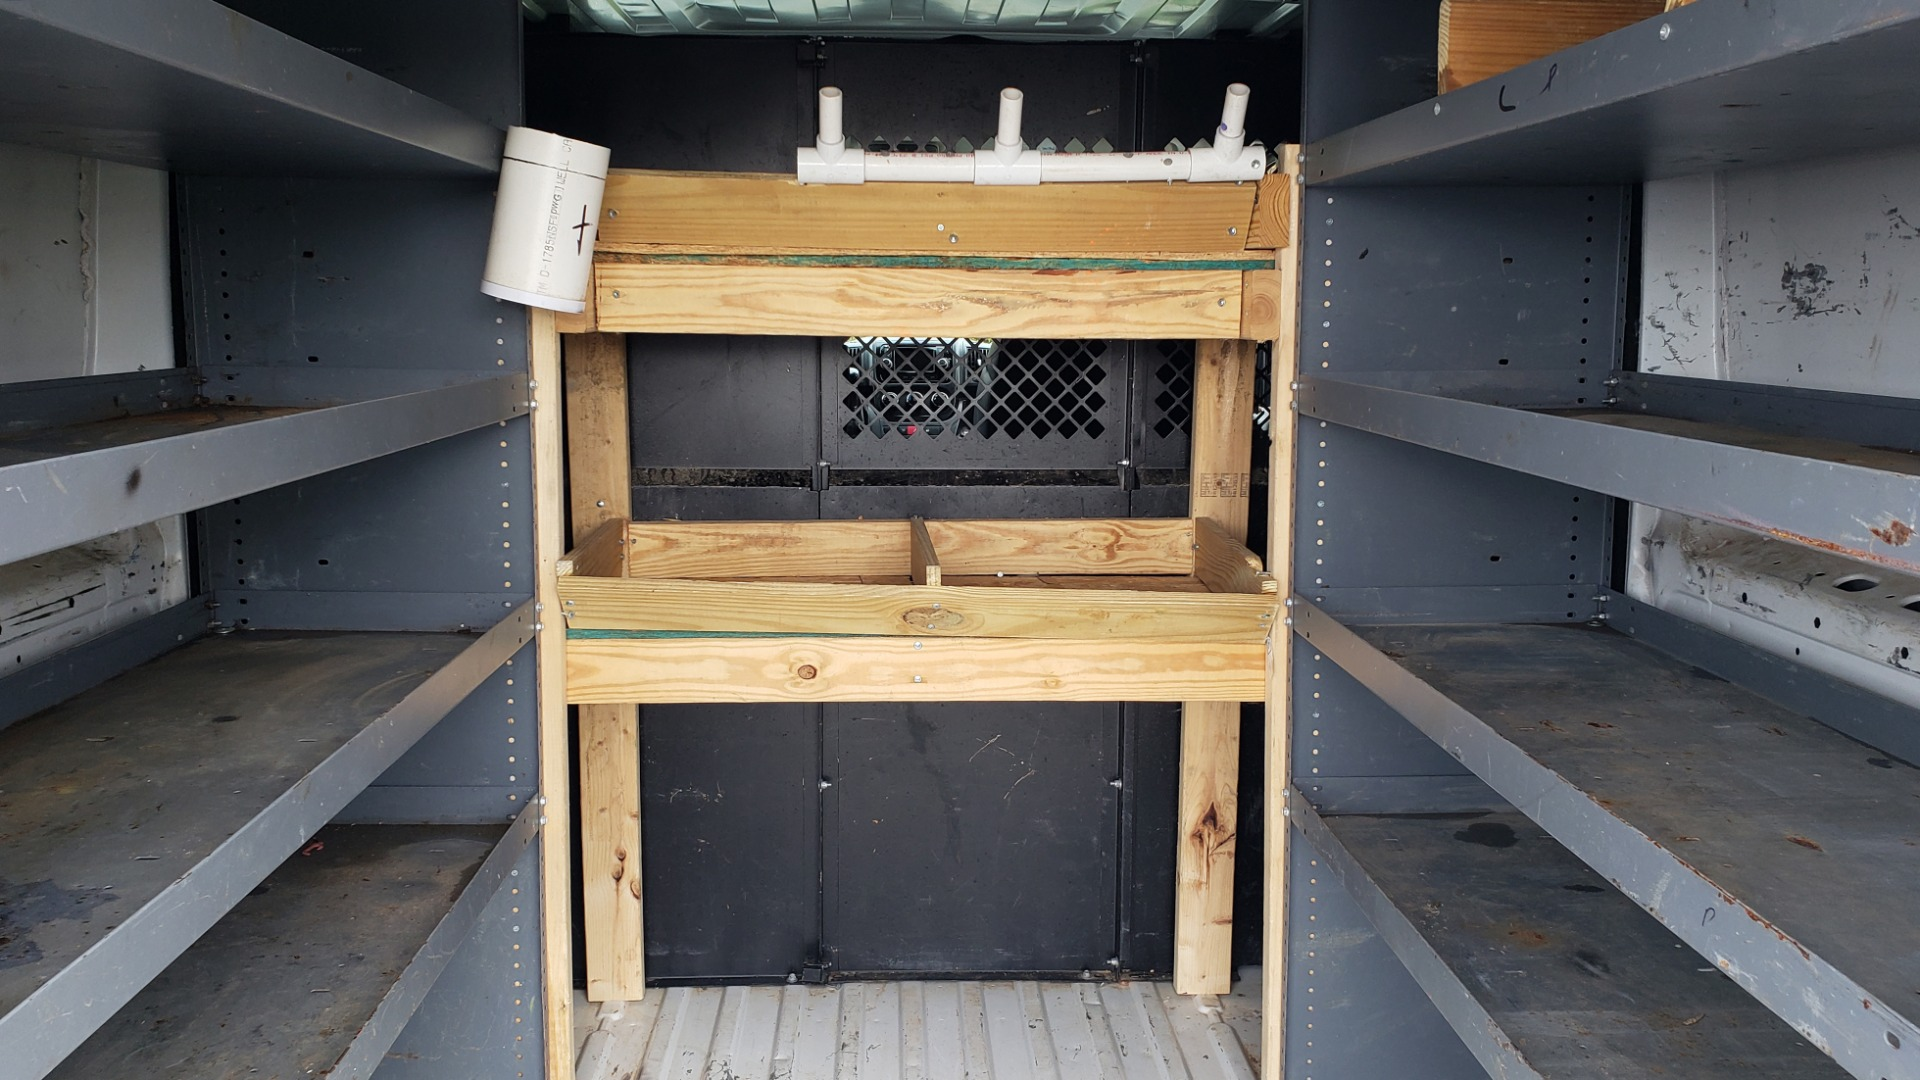 Used 2015 Ram PROMASTER CARGO VAN 136-INCH WB / LOW ROOF / LADDER RACK / INSIDE RACKS for sale Sold at Formula Imports in Charlotte NC 28227 58